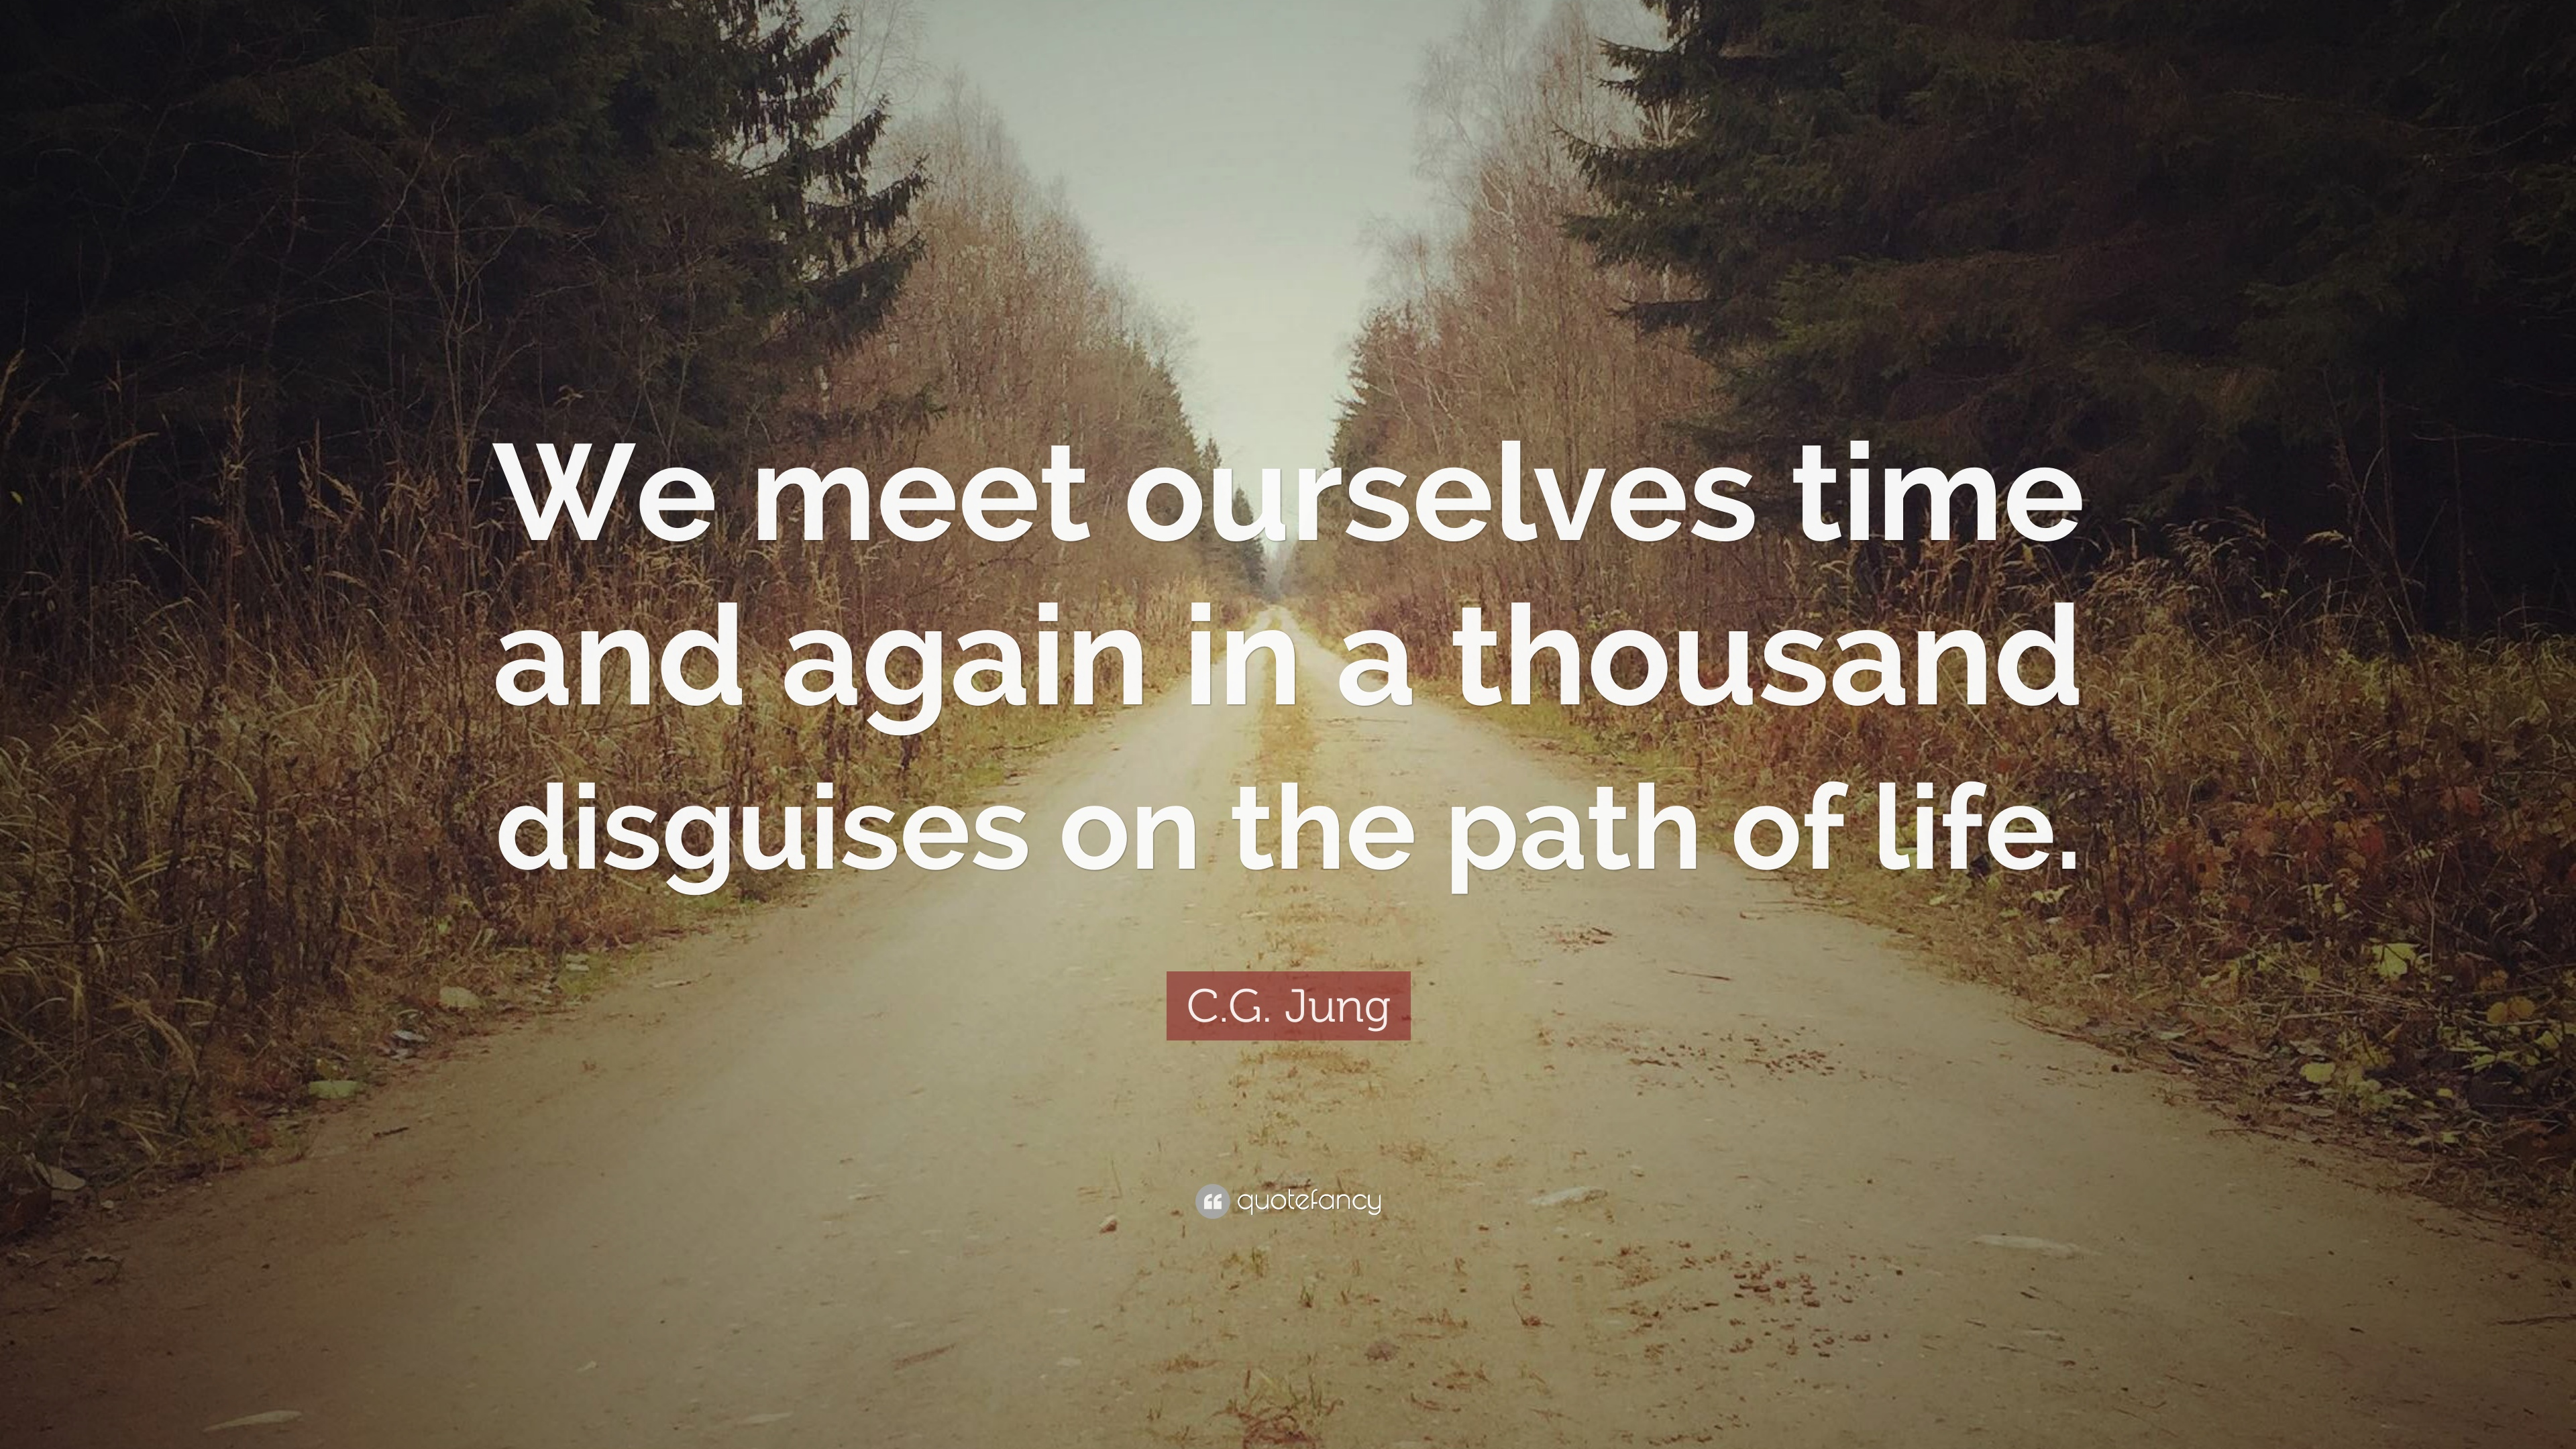 Cg Jung Quote We Meet Ourselves Time And Again In A Thousand